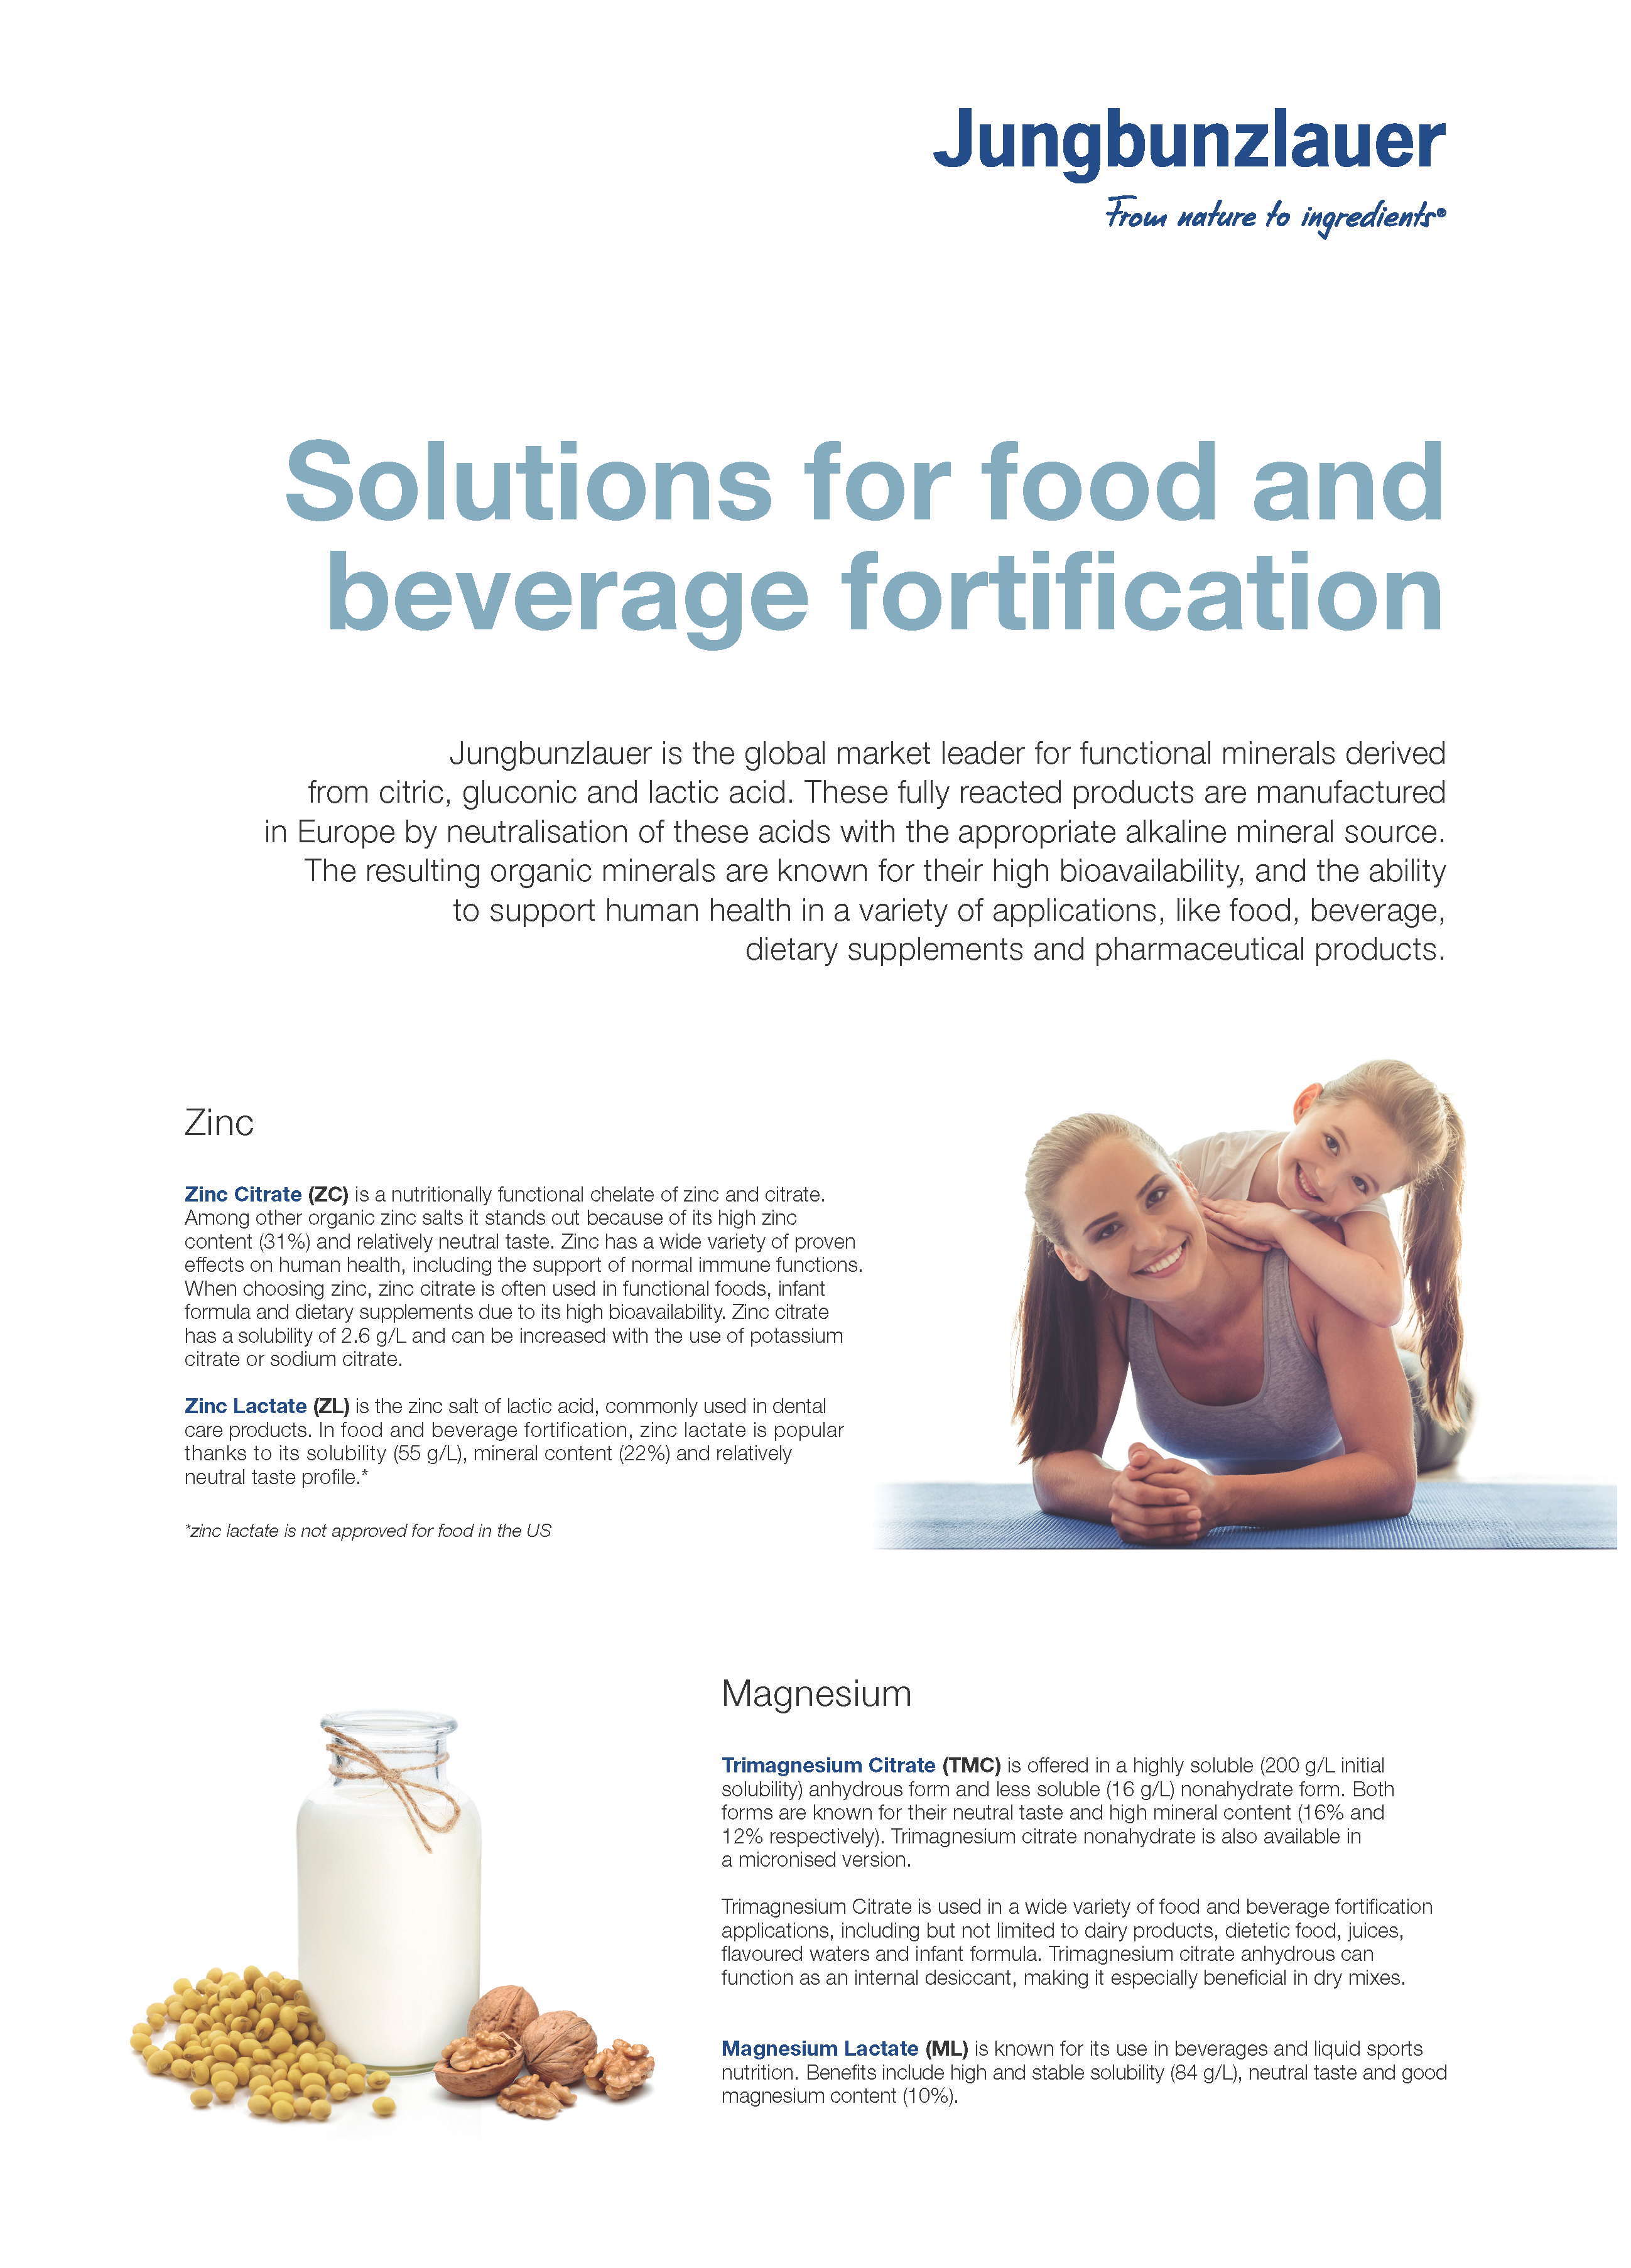 Pages from JBL FL Solutions for food and beverage fortification 2020-144 HR